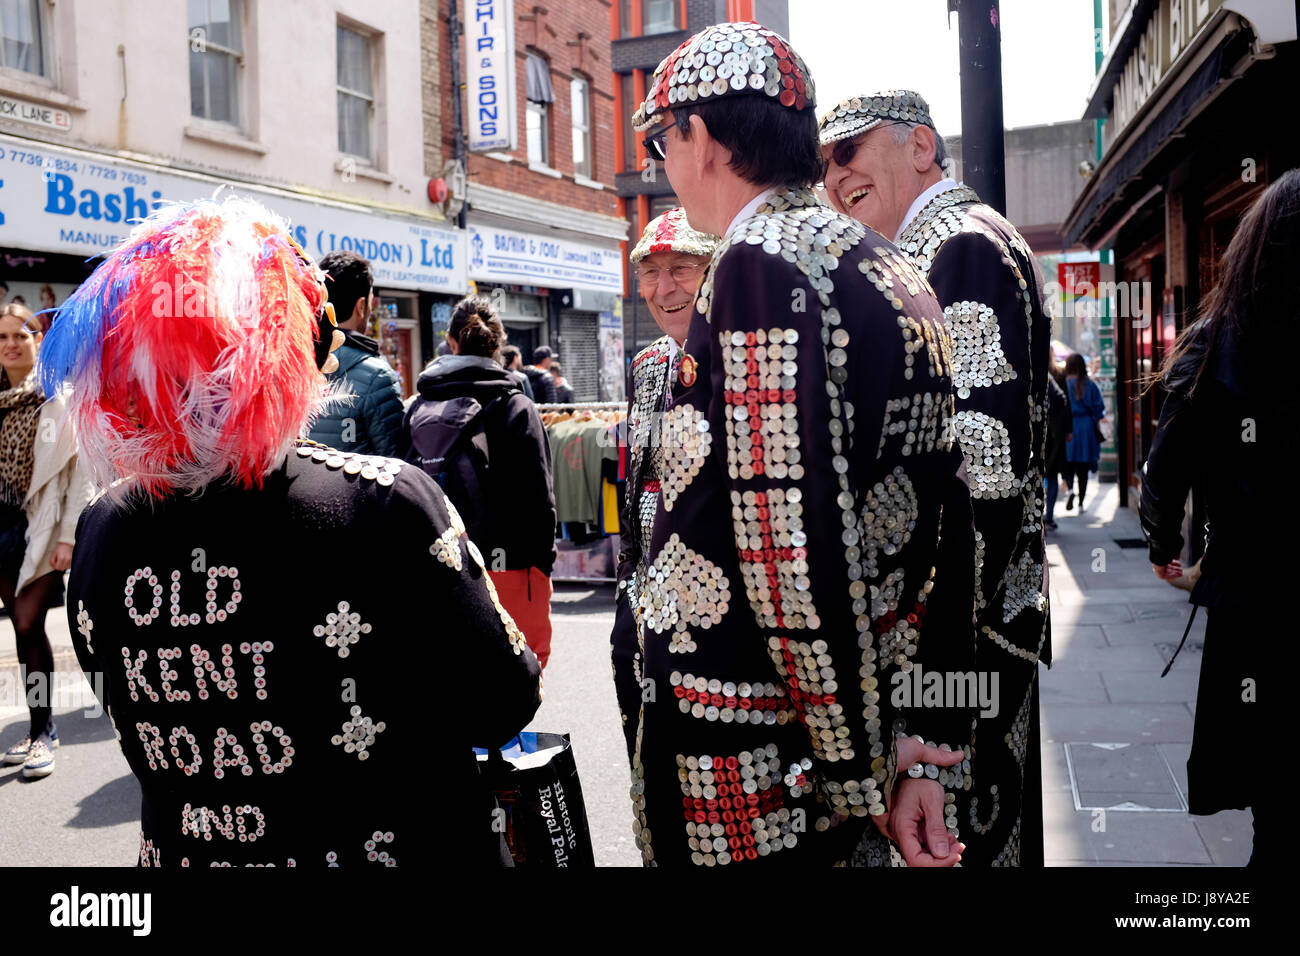 The 'Pearlies' of London. The Pearly Kings and Queens are a charitable organisation dating back to the 19th - Stock Image